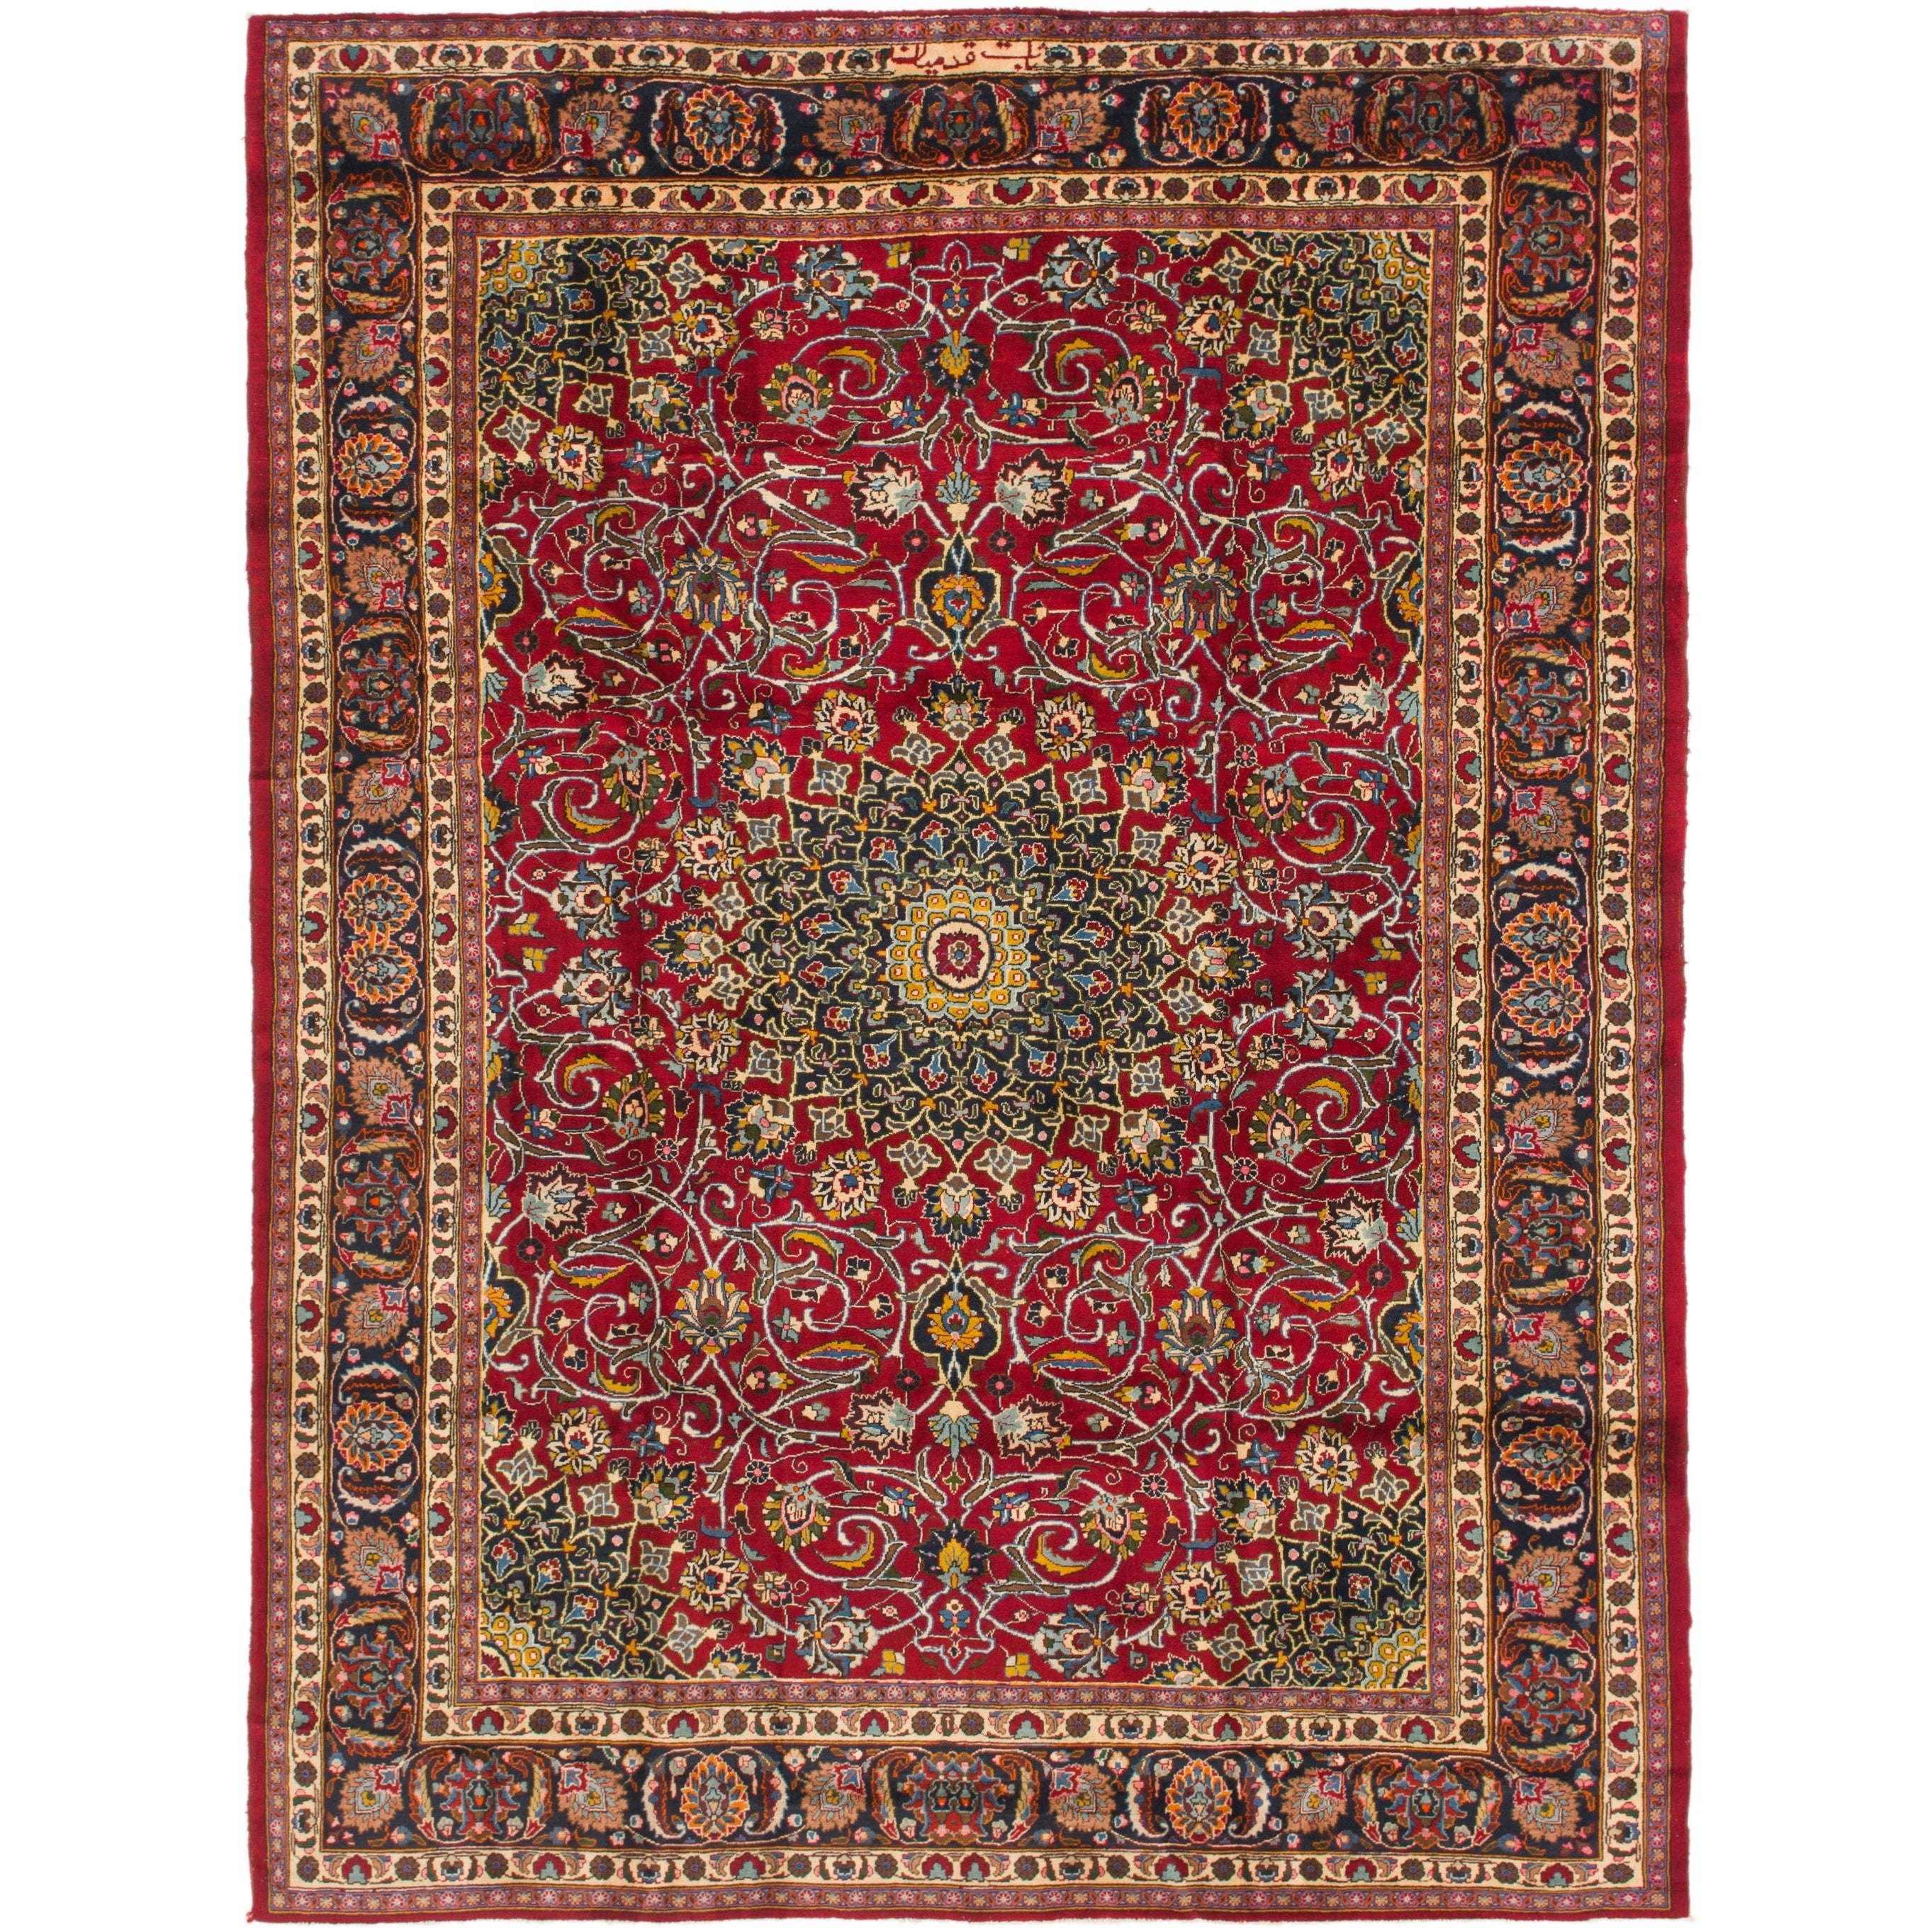 Hand Knotted Kashmar Semi Antique Wool Area Rug - 8 x 10 10 (Red - 8 x 10 10)